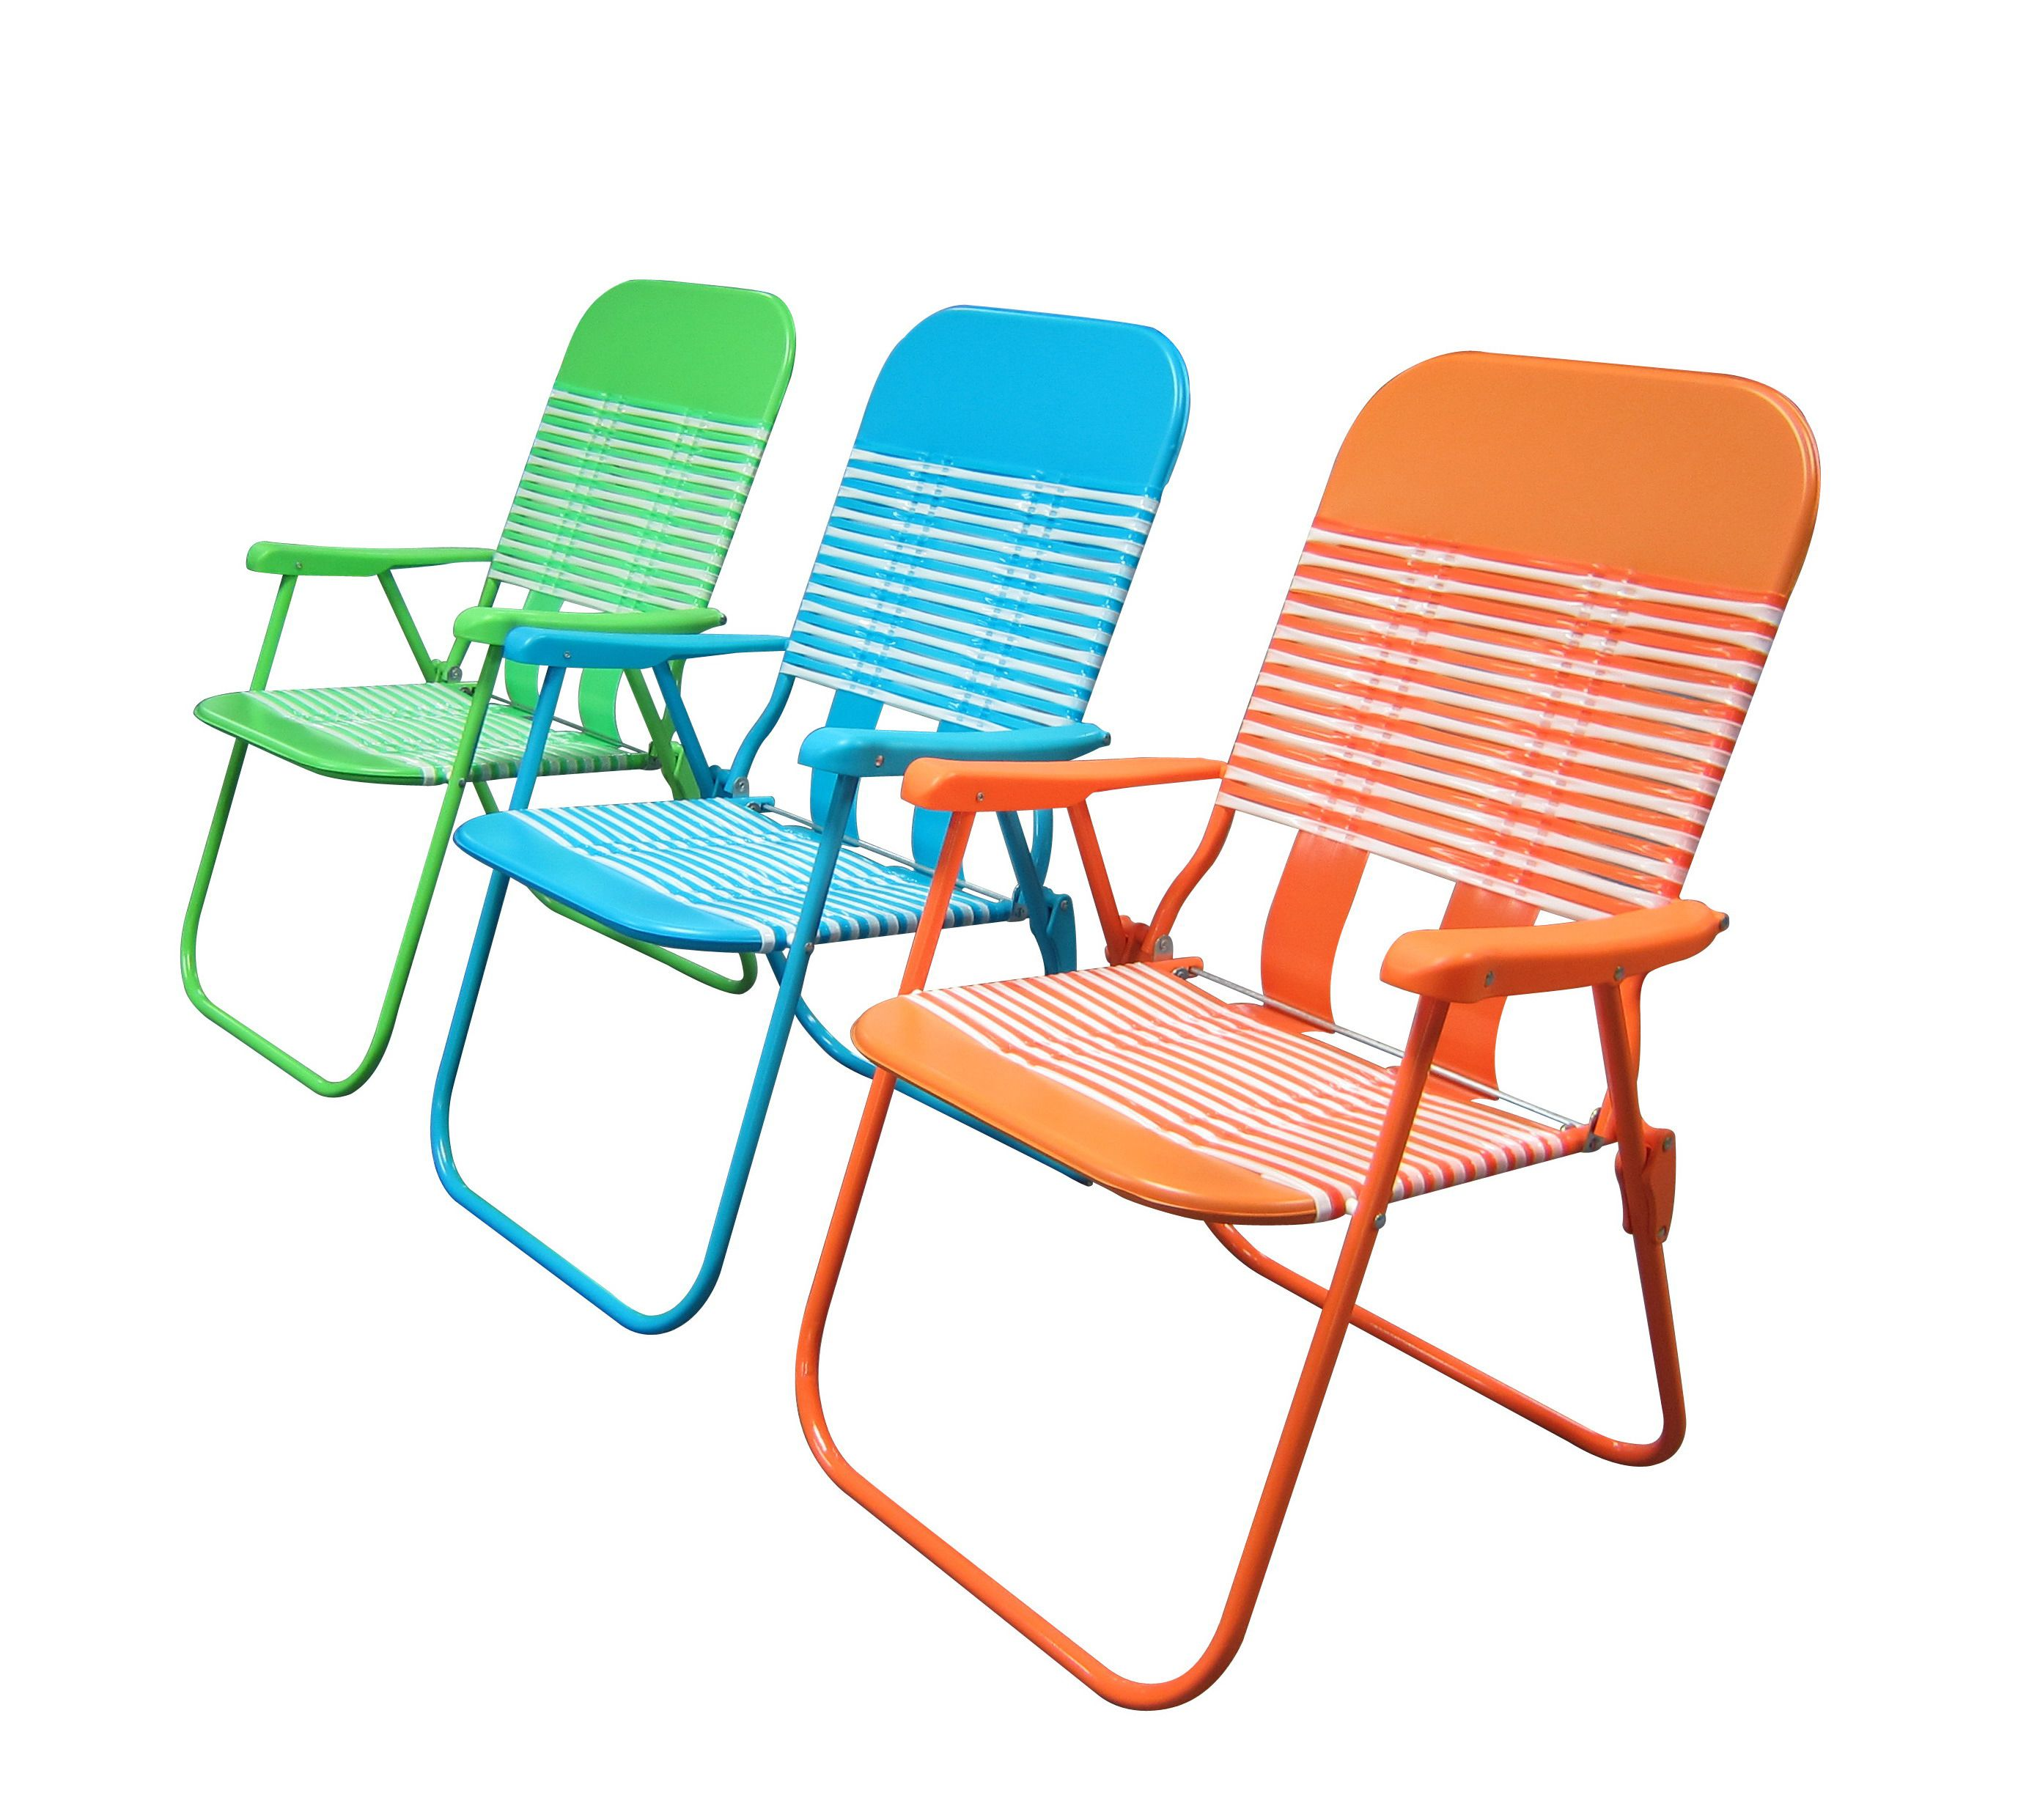 Marvelous Marquee Pvc Folding Chair Bunnings Warehouse Cheap Bralicious Painted Fabric Chair Ideas Braliciousco